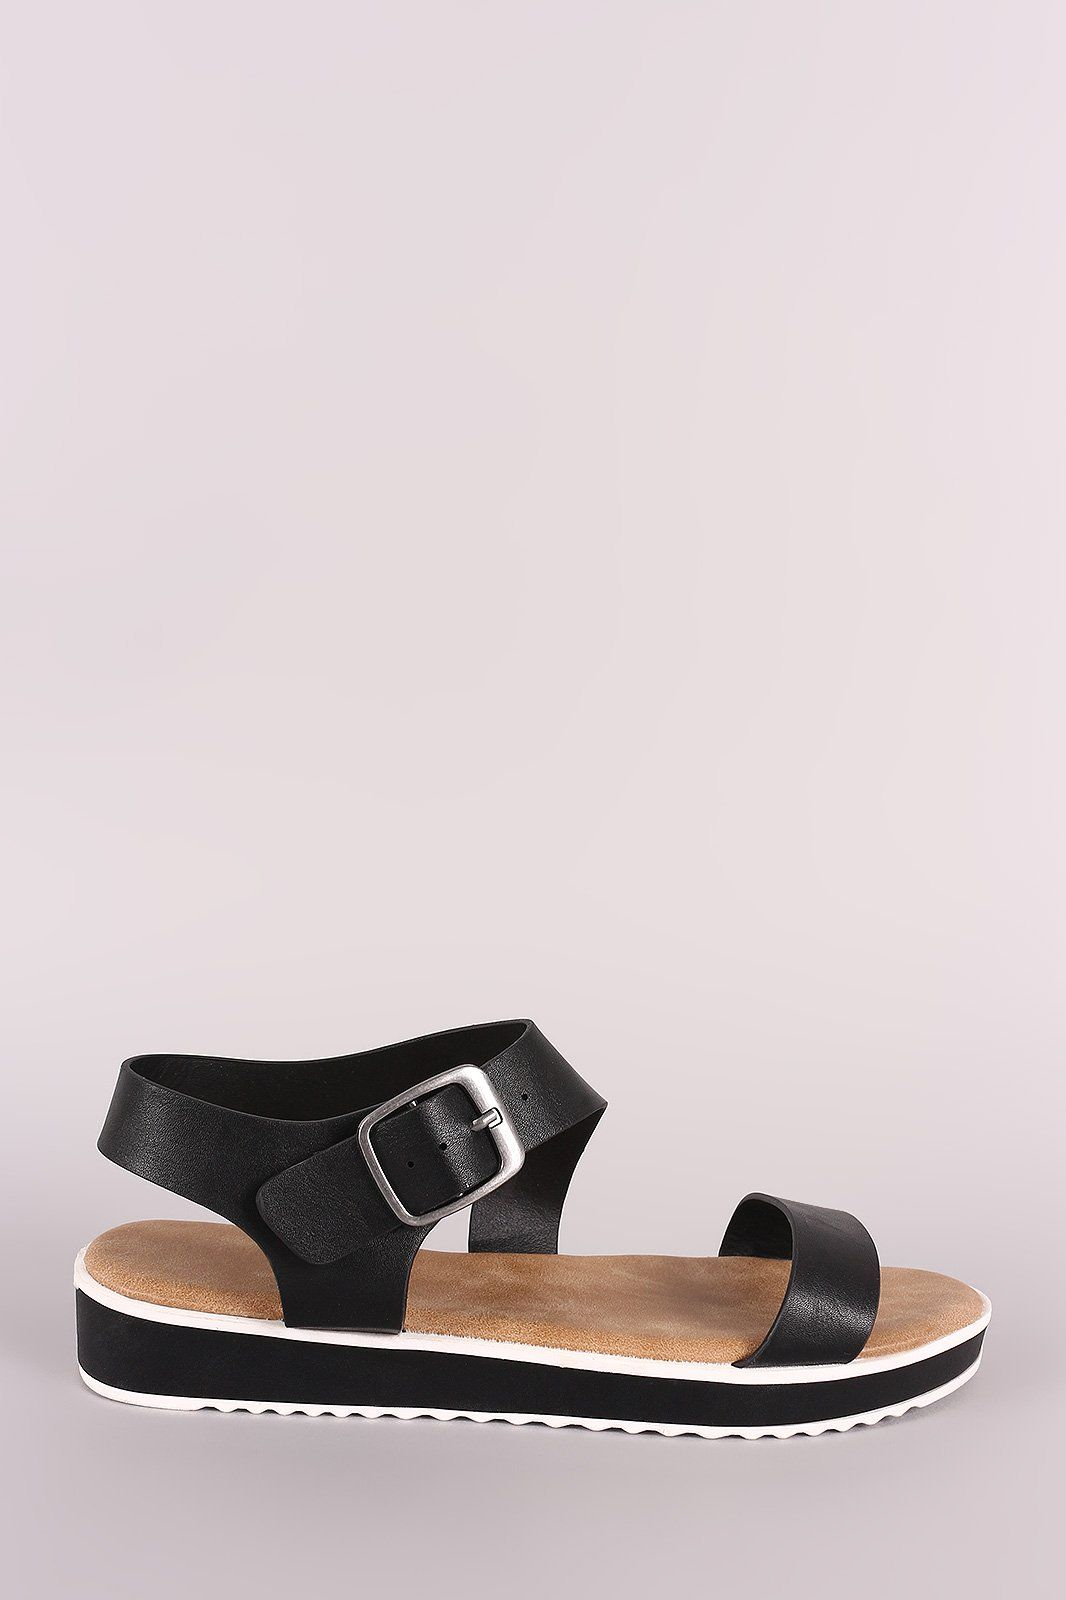 41b90faab03 Bamboo Vegan Leather Ankle Strap Low Flatform Sandal These low flatform  sandal features a vegan leather